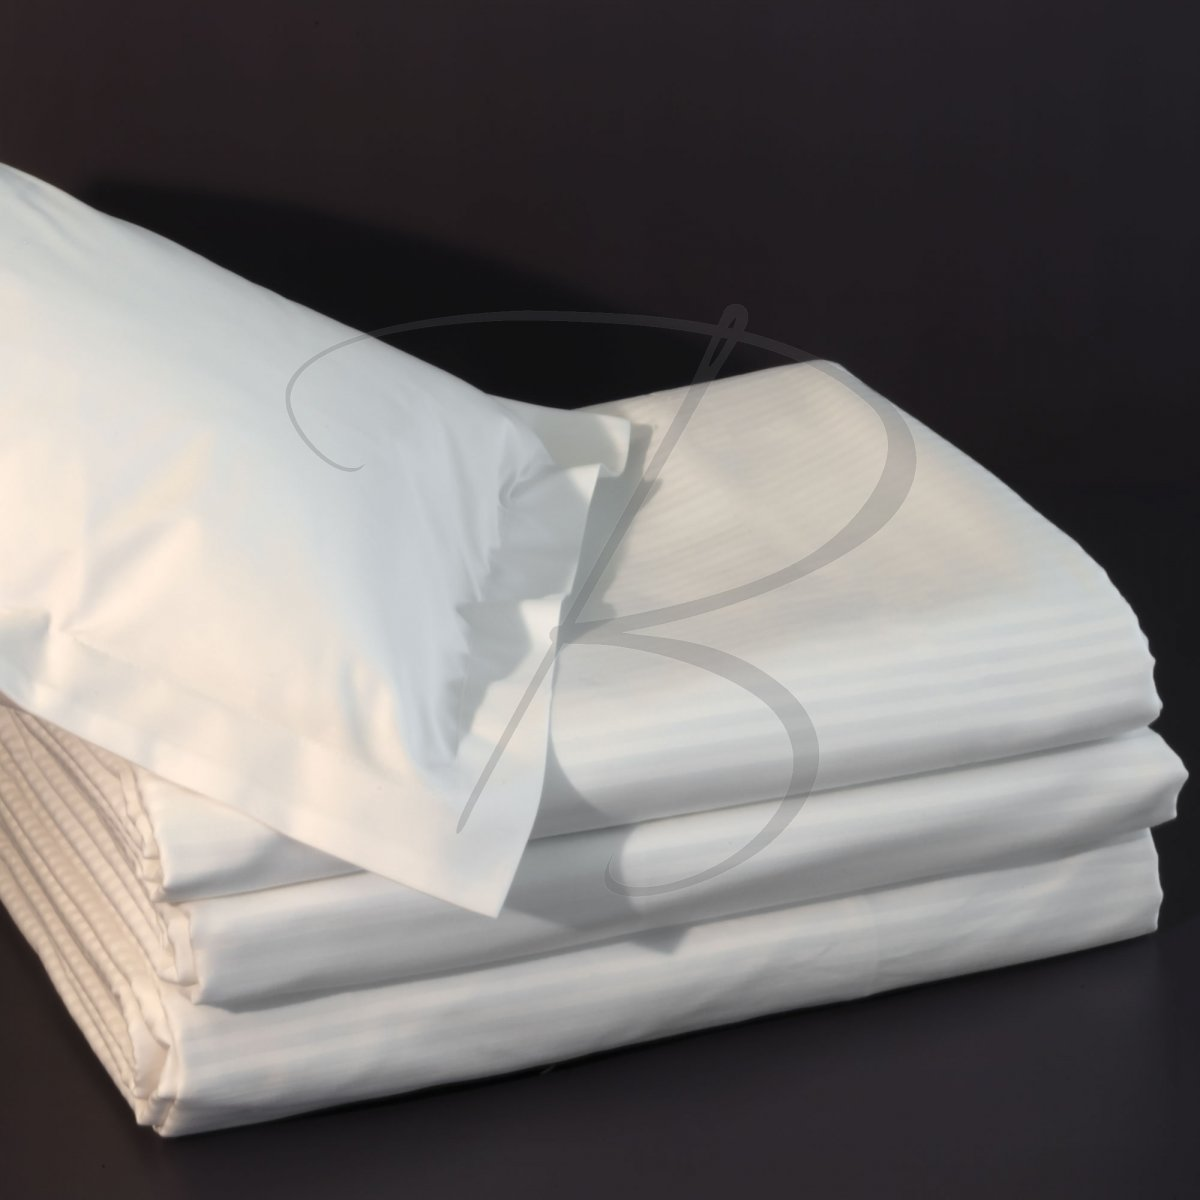 Cotton percale fitted sheet 1900 - 90 x 200 - 120g/m² - 200TC